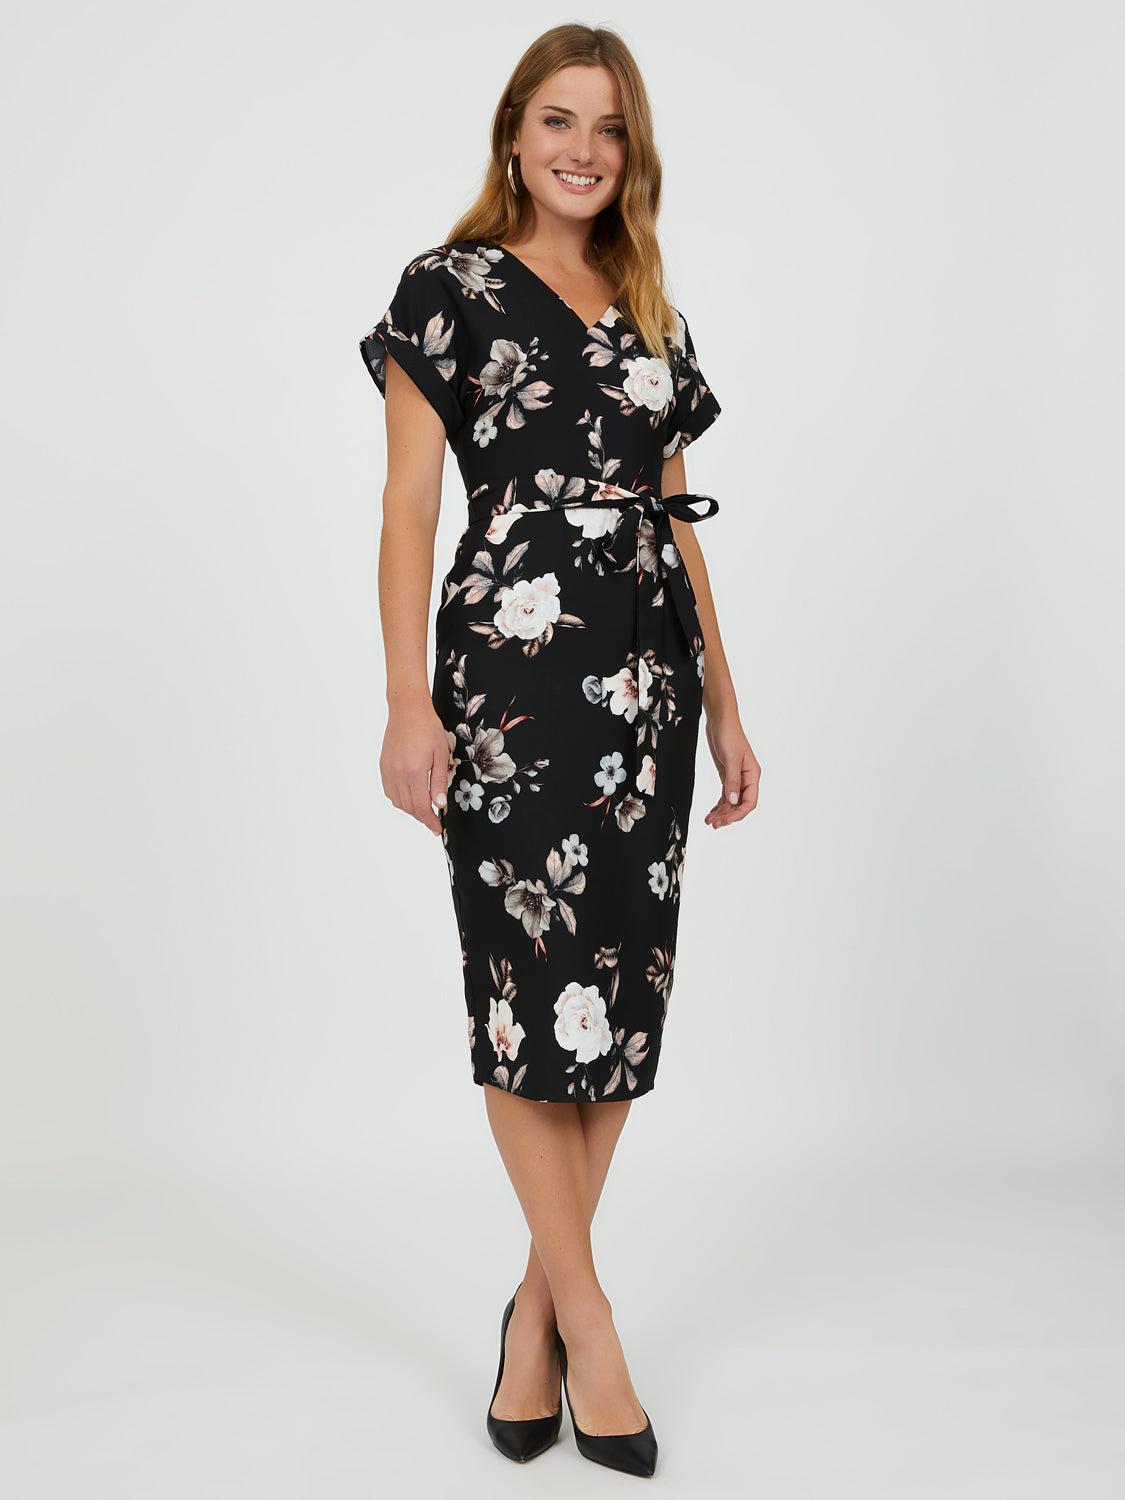 Floral Midi Sheath Dress